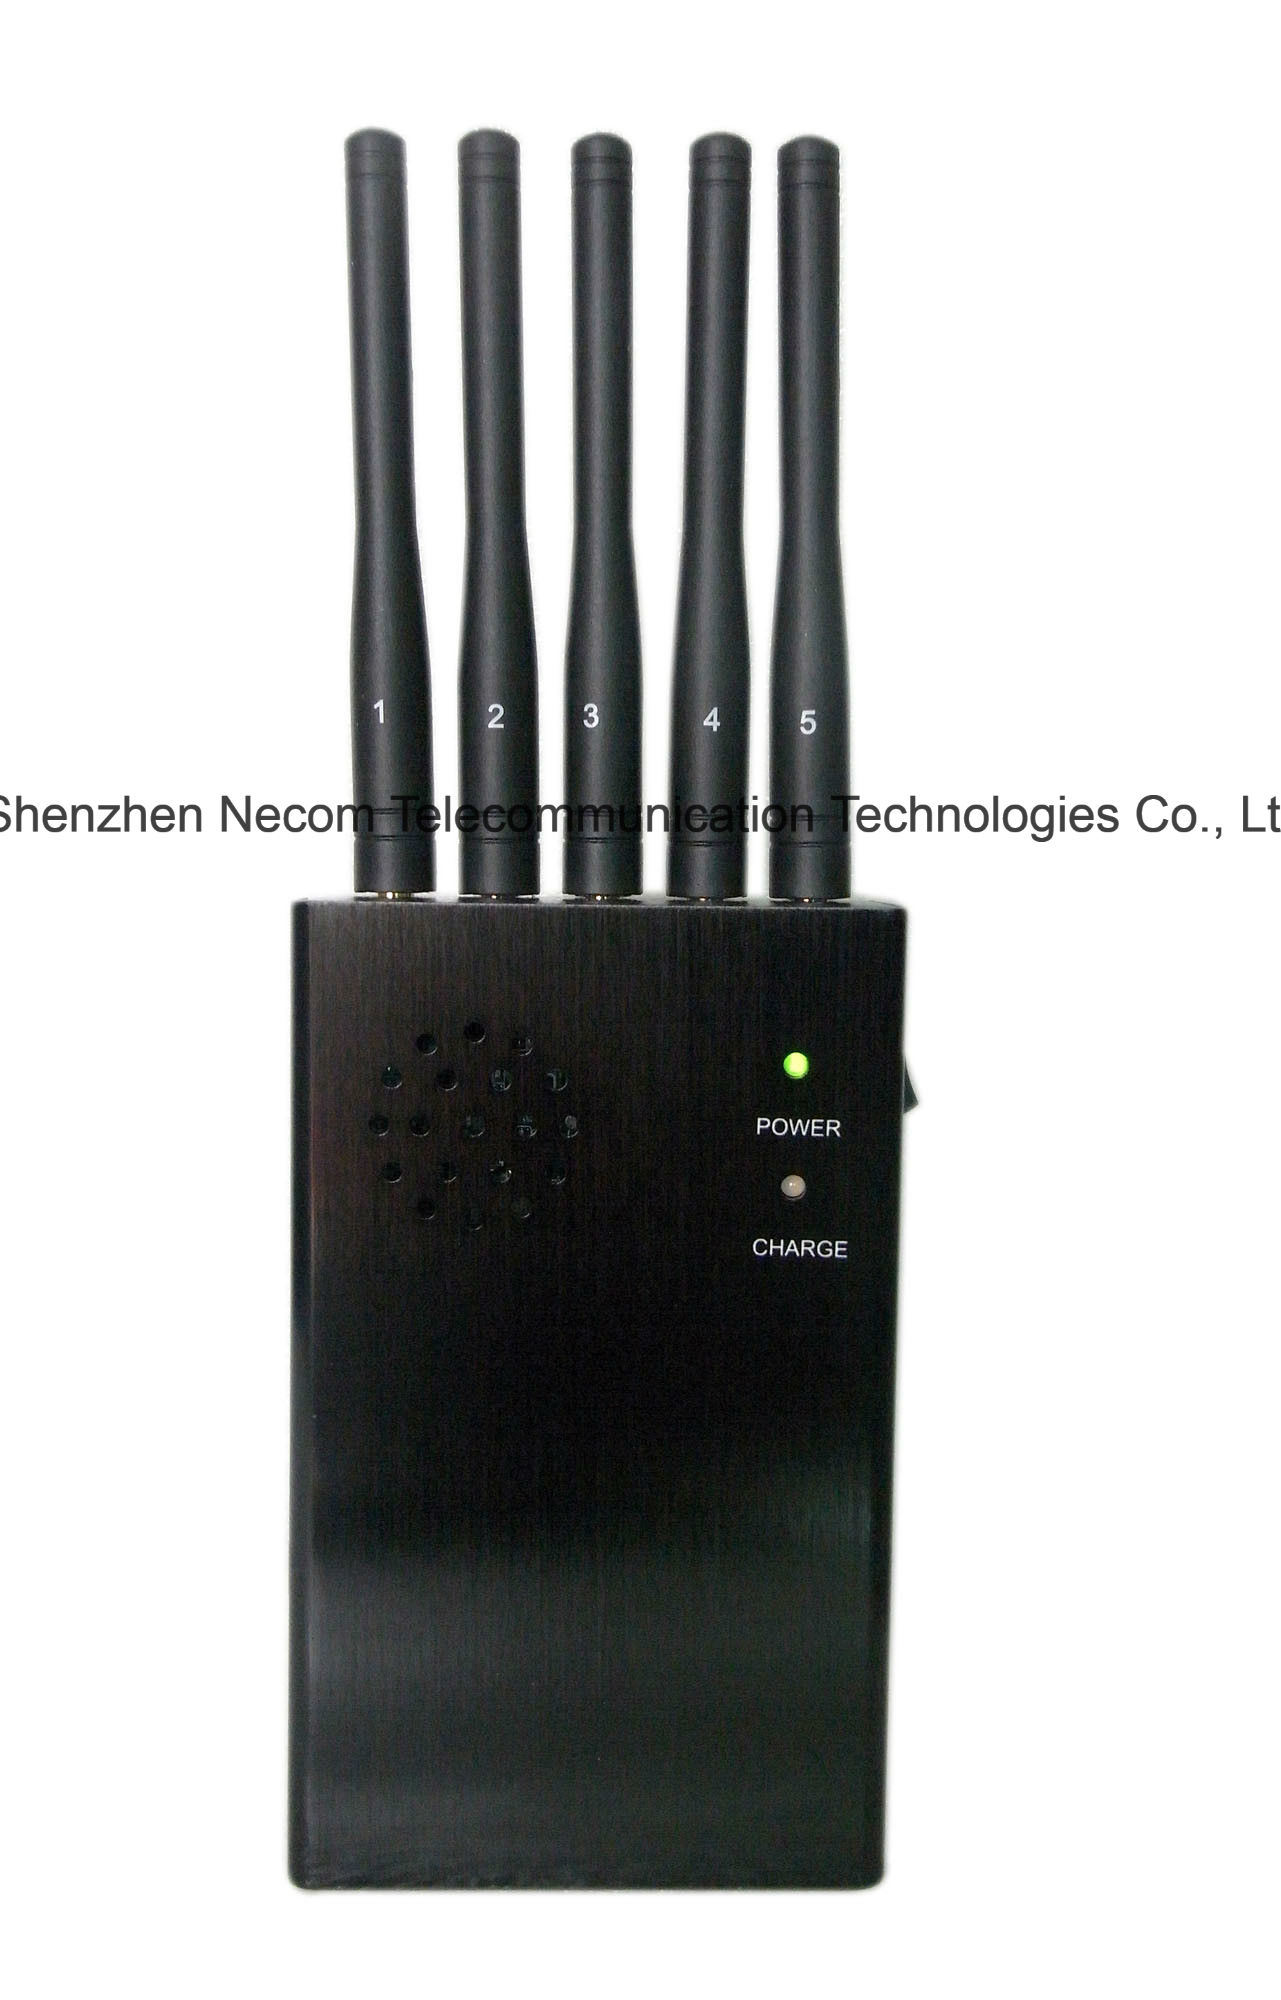 Gps jammer wikipedia - China Wireless Cell Phone Signal Jammer CDMA GSM Dcs Phs 3G, Five Antenna, Wireless GPS & WiFi Cell Phone 5 Antenna Portable Jammer - China 5 Band Signal Blockers, Five Antennas Jammers